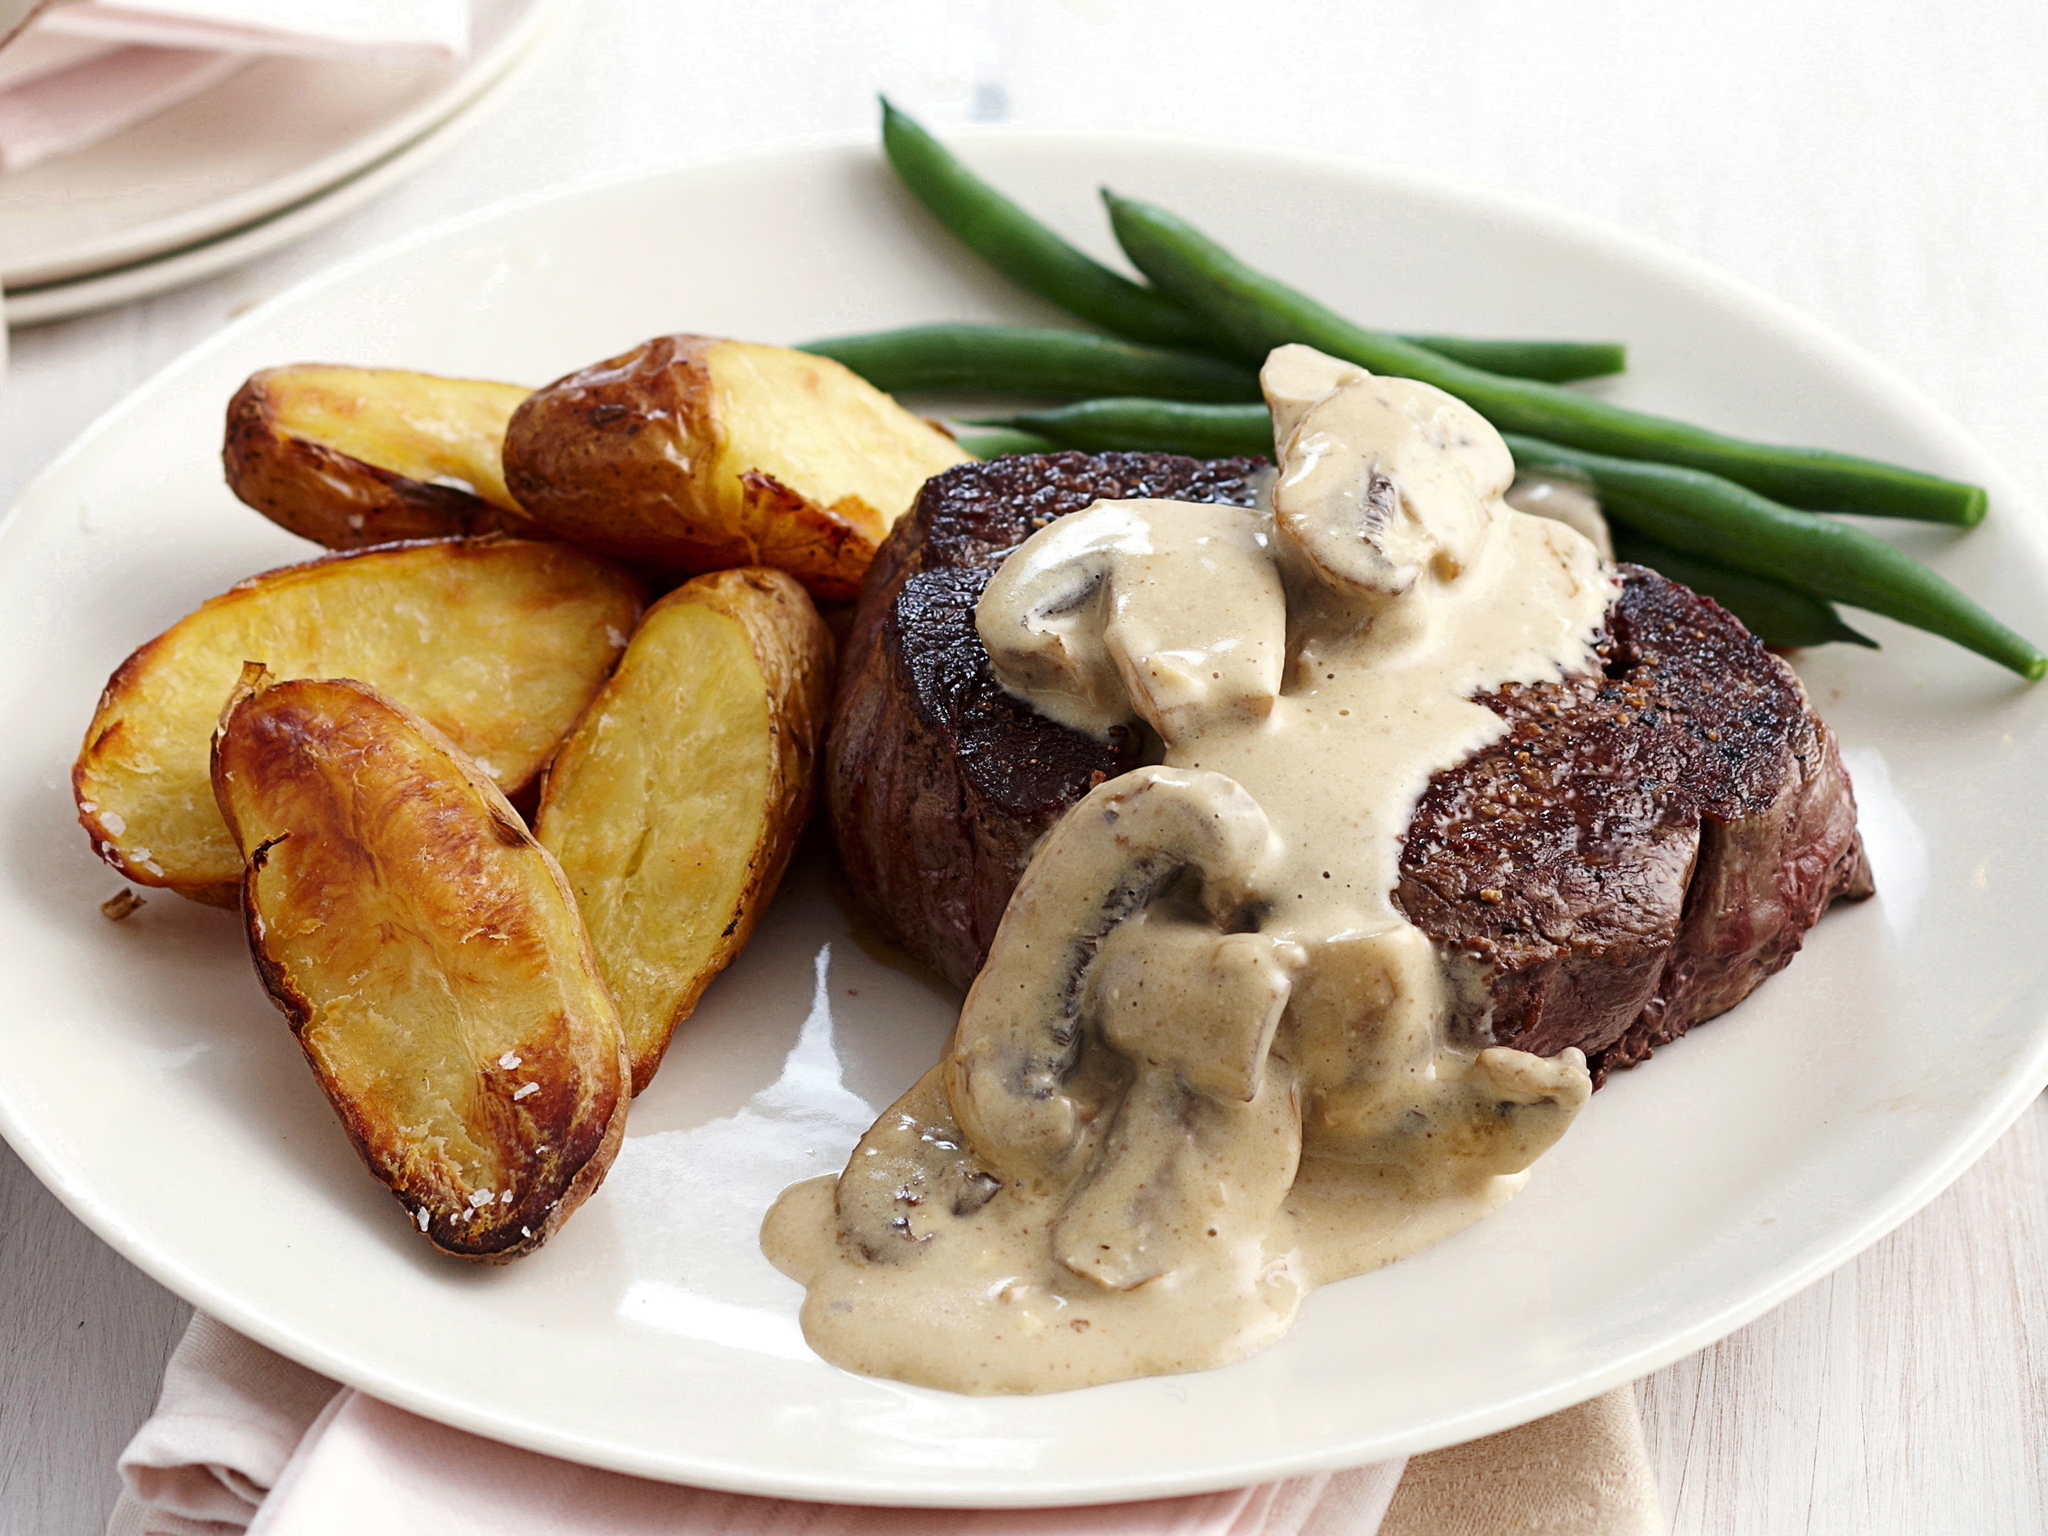 Fillet Steak With Mushroom Sauce Recipe Food To Love - 2048x1536 ...